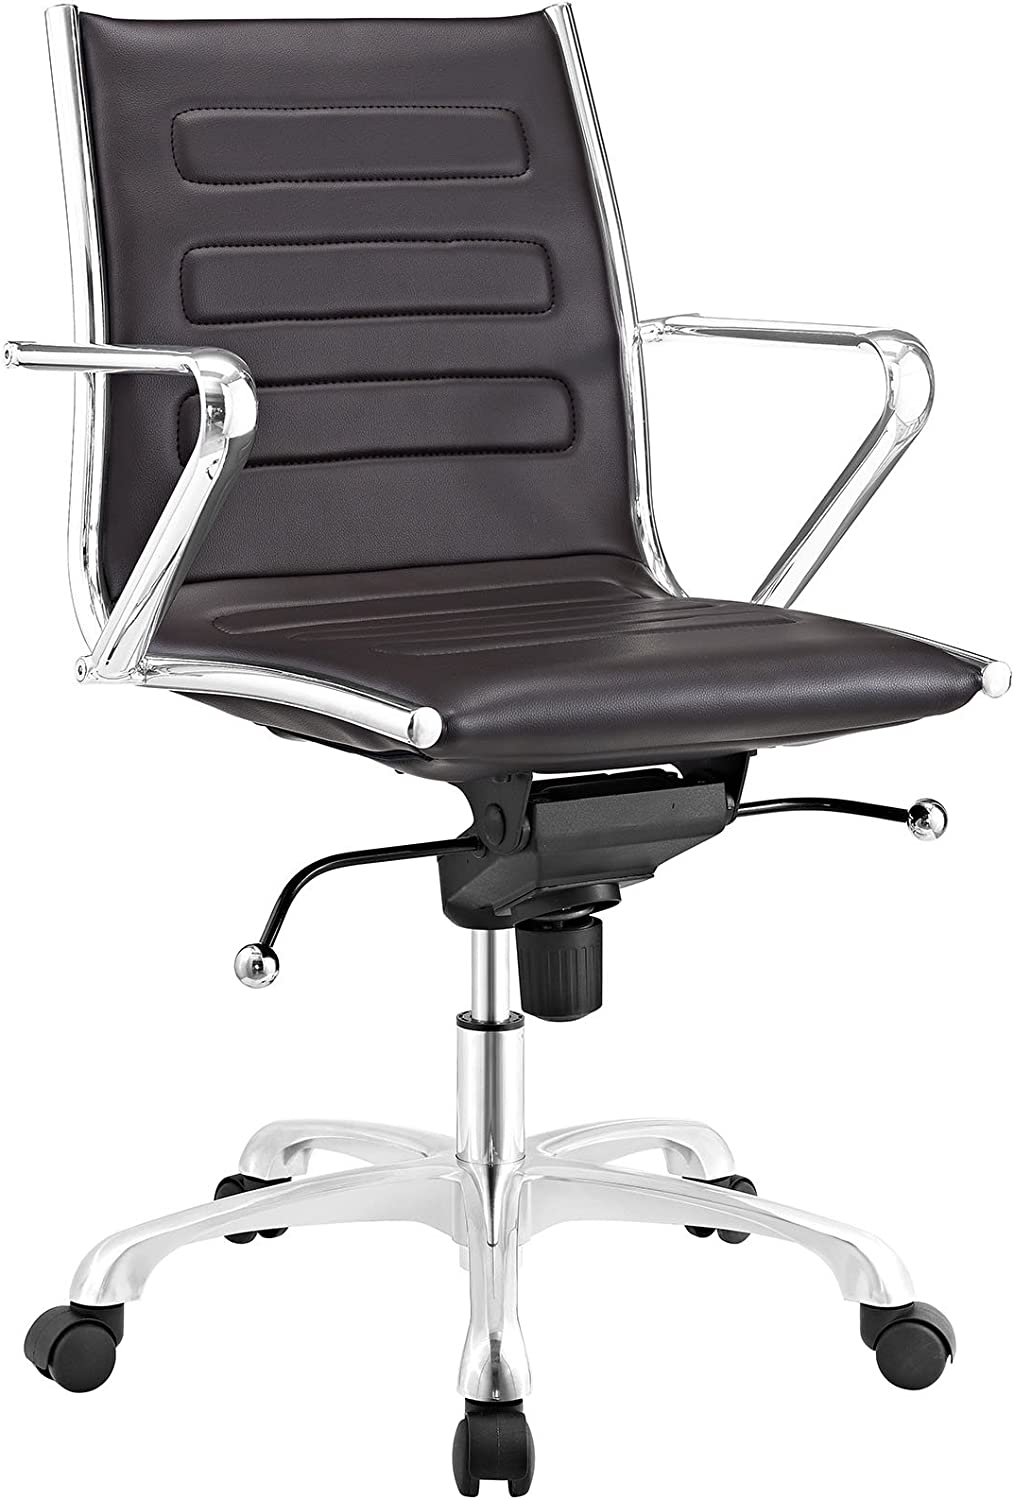 Modway Ascend Faux Leather Adjustable Swivel Office Chair in Brown